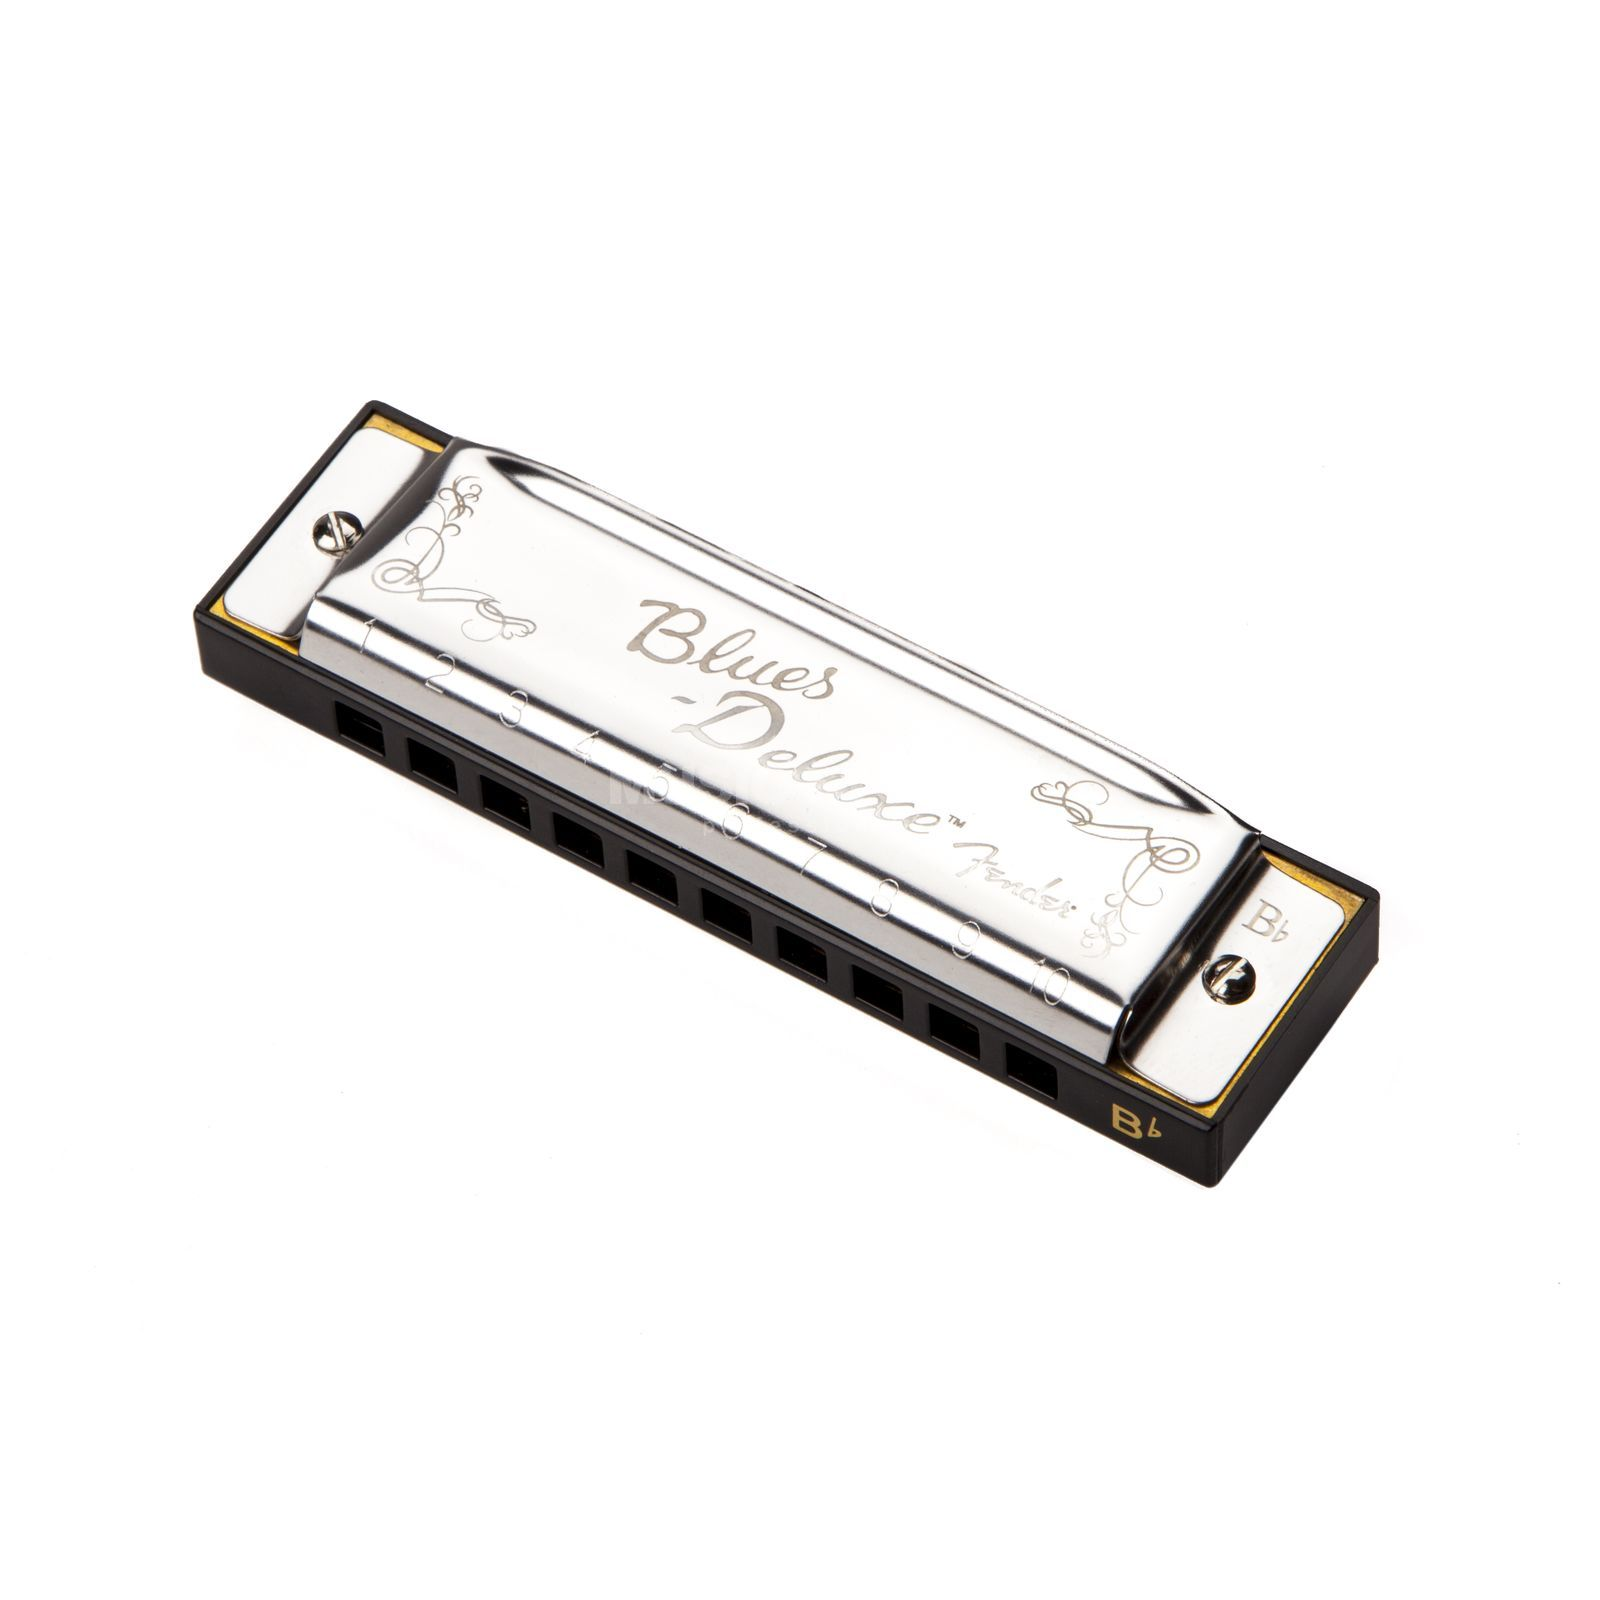 Fender Blues Deluxe Harmonica Key of B Flat Immagine prodotto